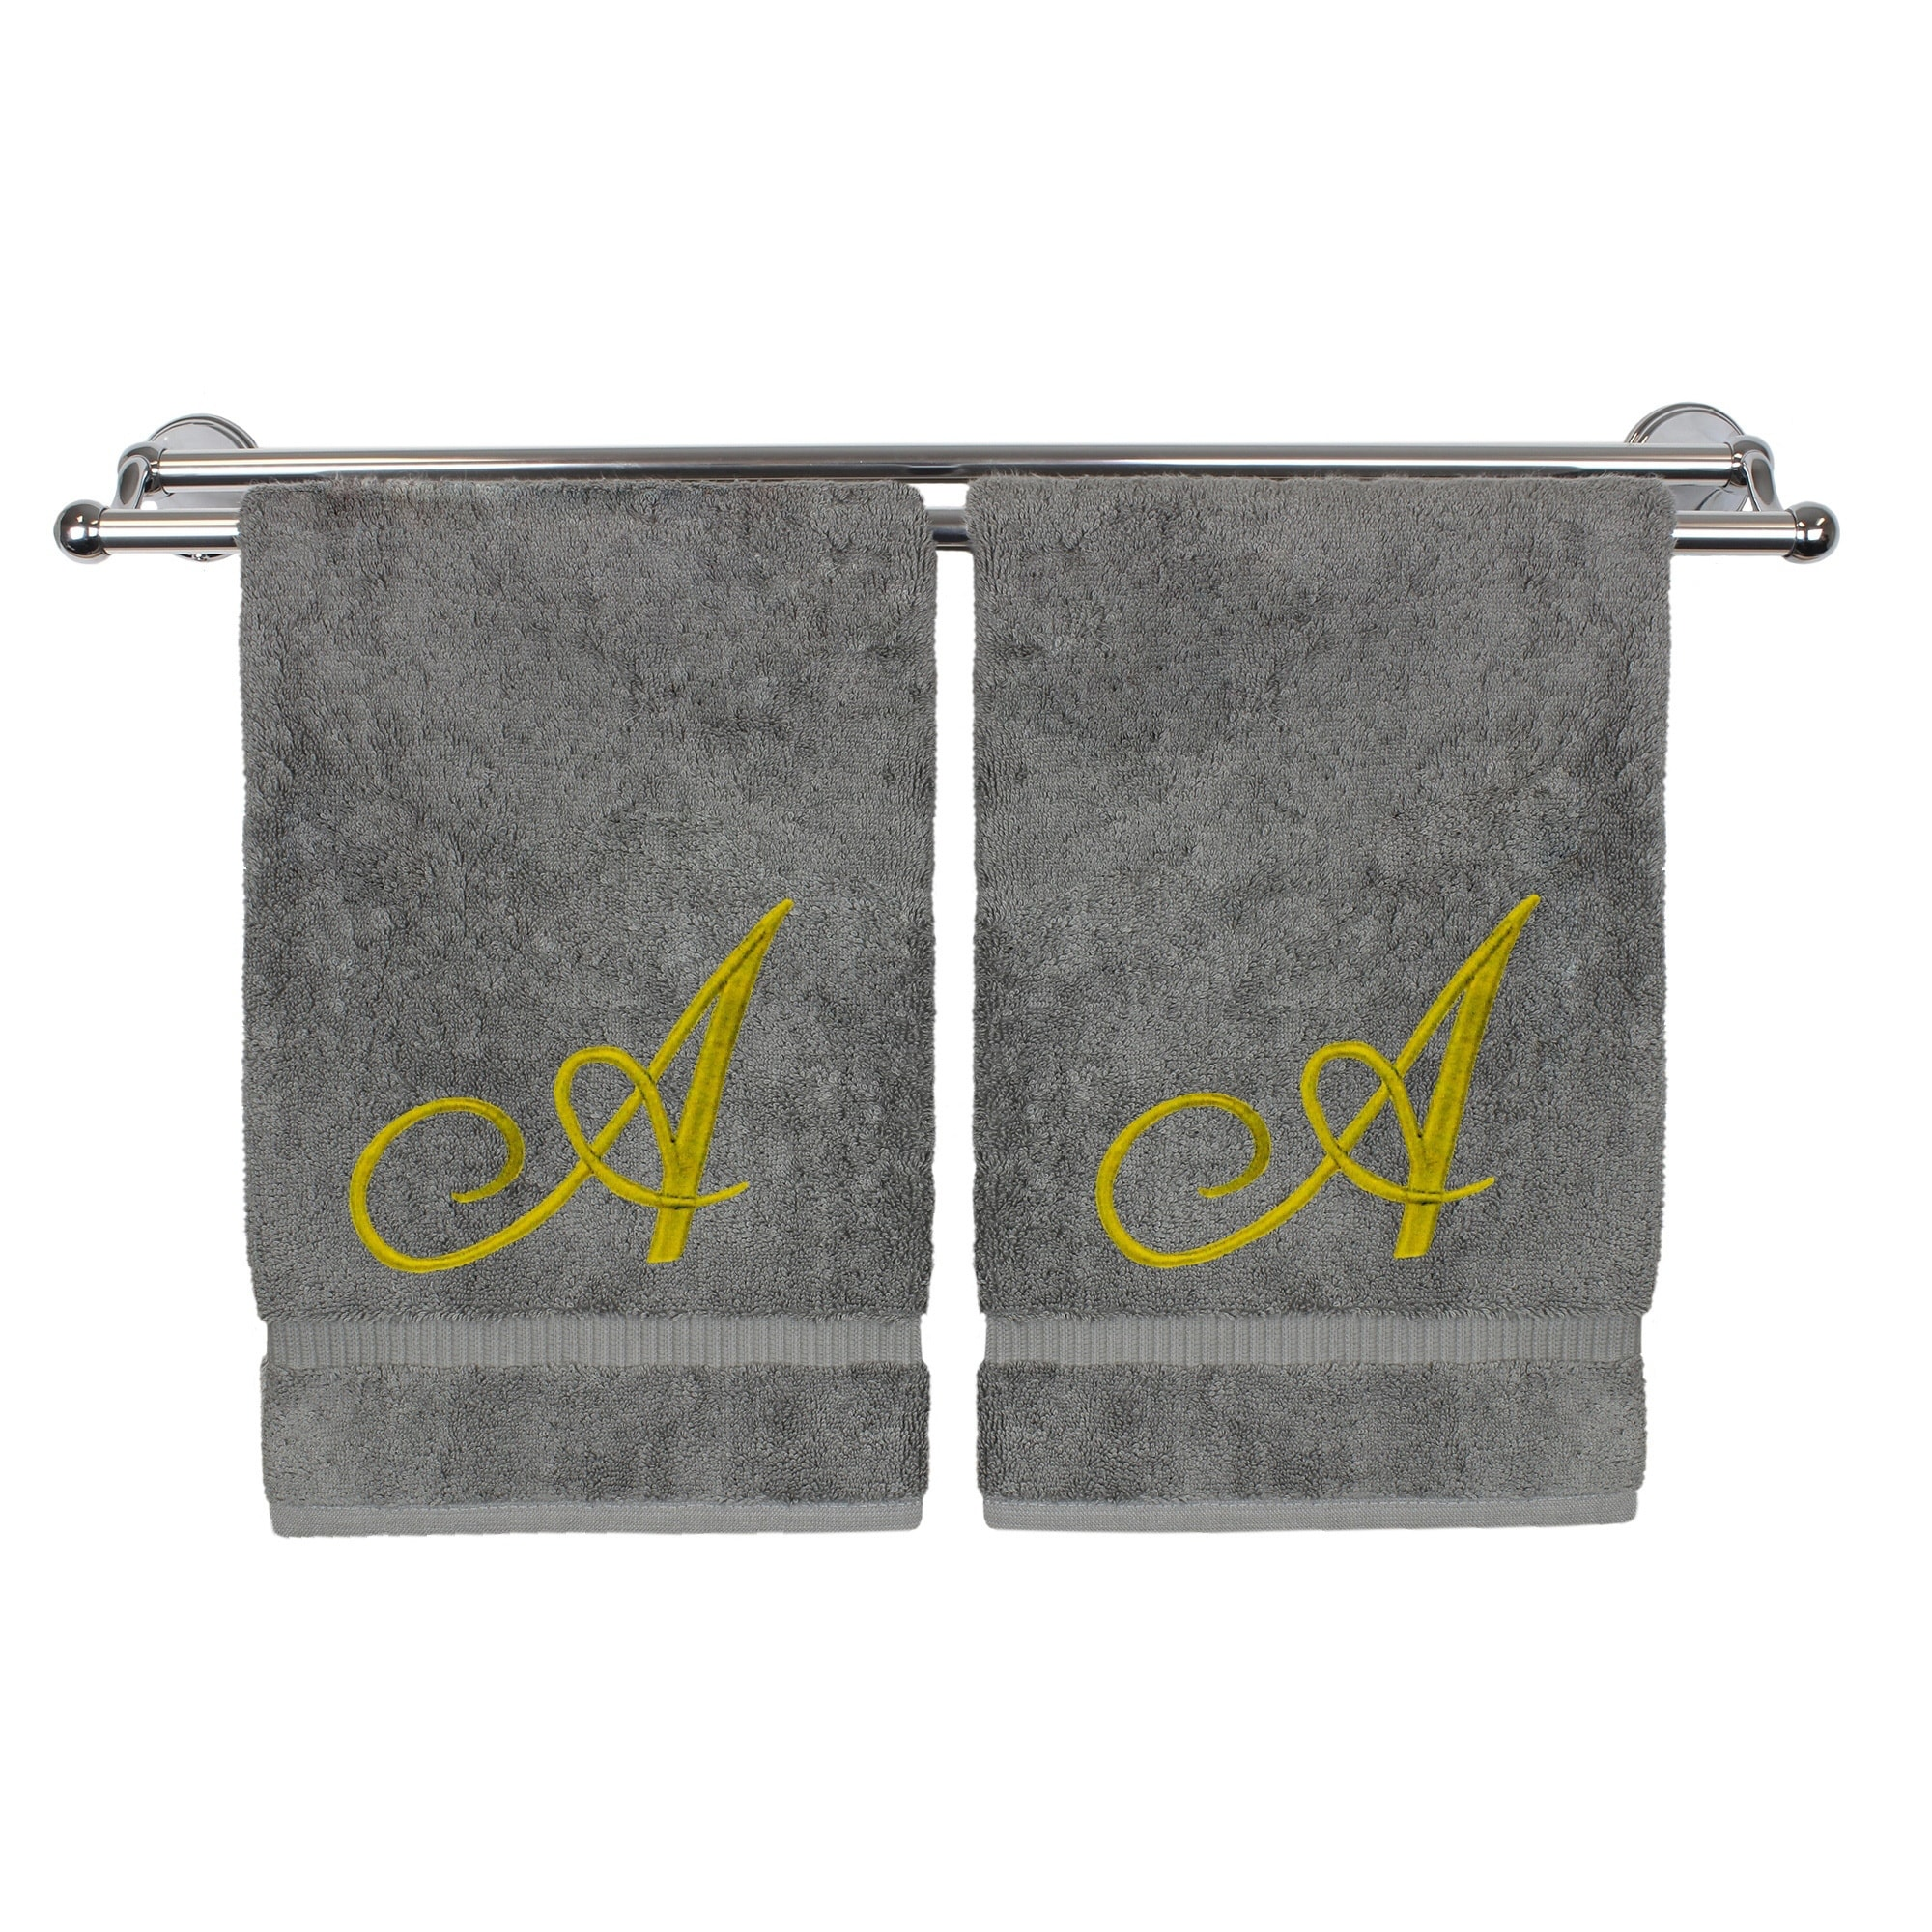 Monogrammed Washcloth Towel, Personalized Gift, 13x13 Inches - Set of 2 - Gold Script Embroidered Towel - Extra Absorbent 100% Turkish Cotton - Soft Terry Finish - Initial A Gray Towels